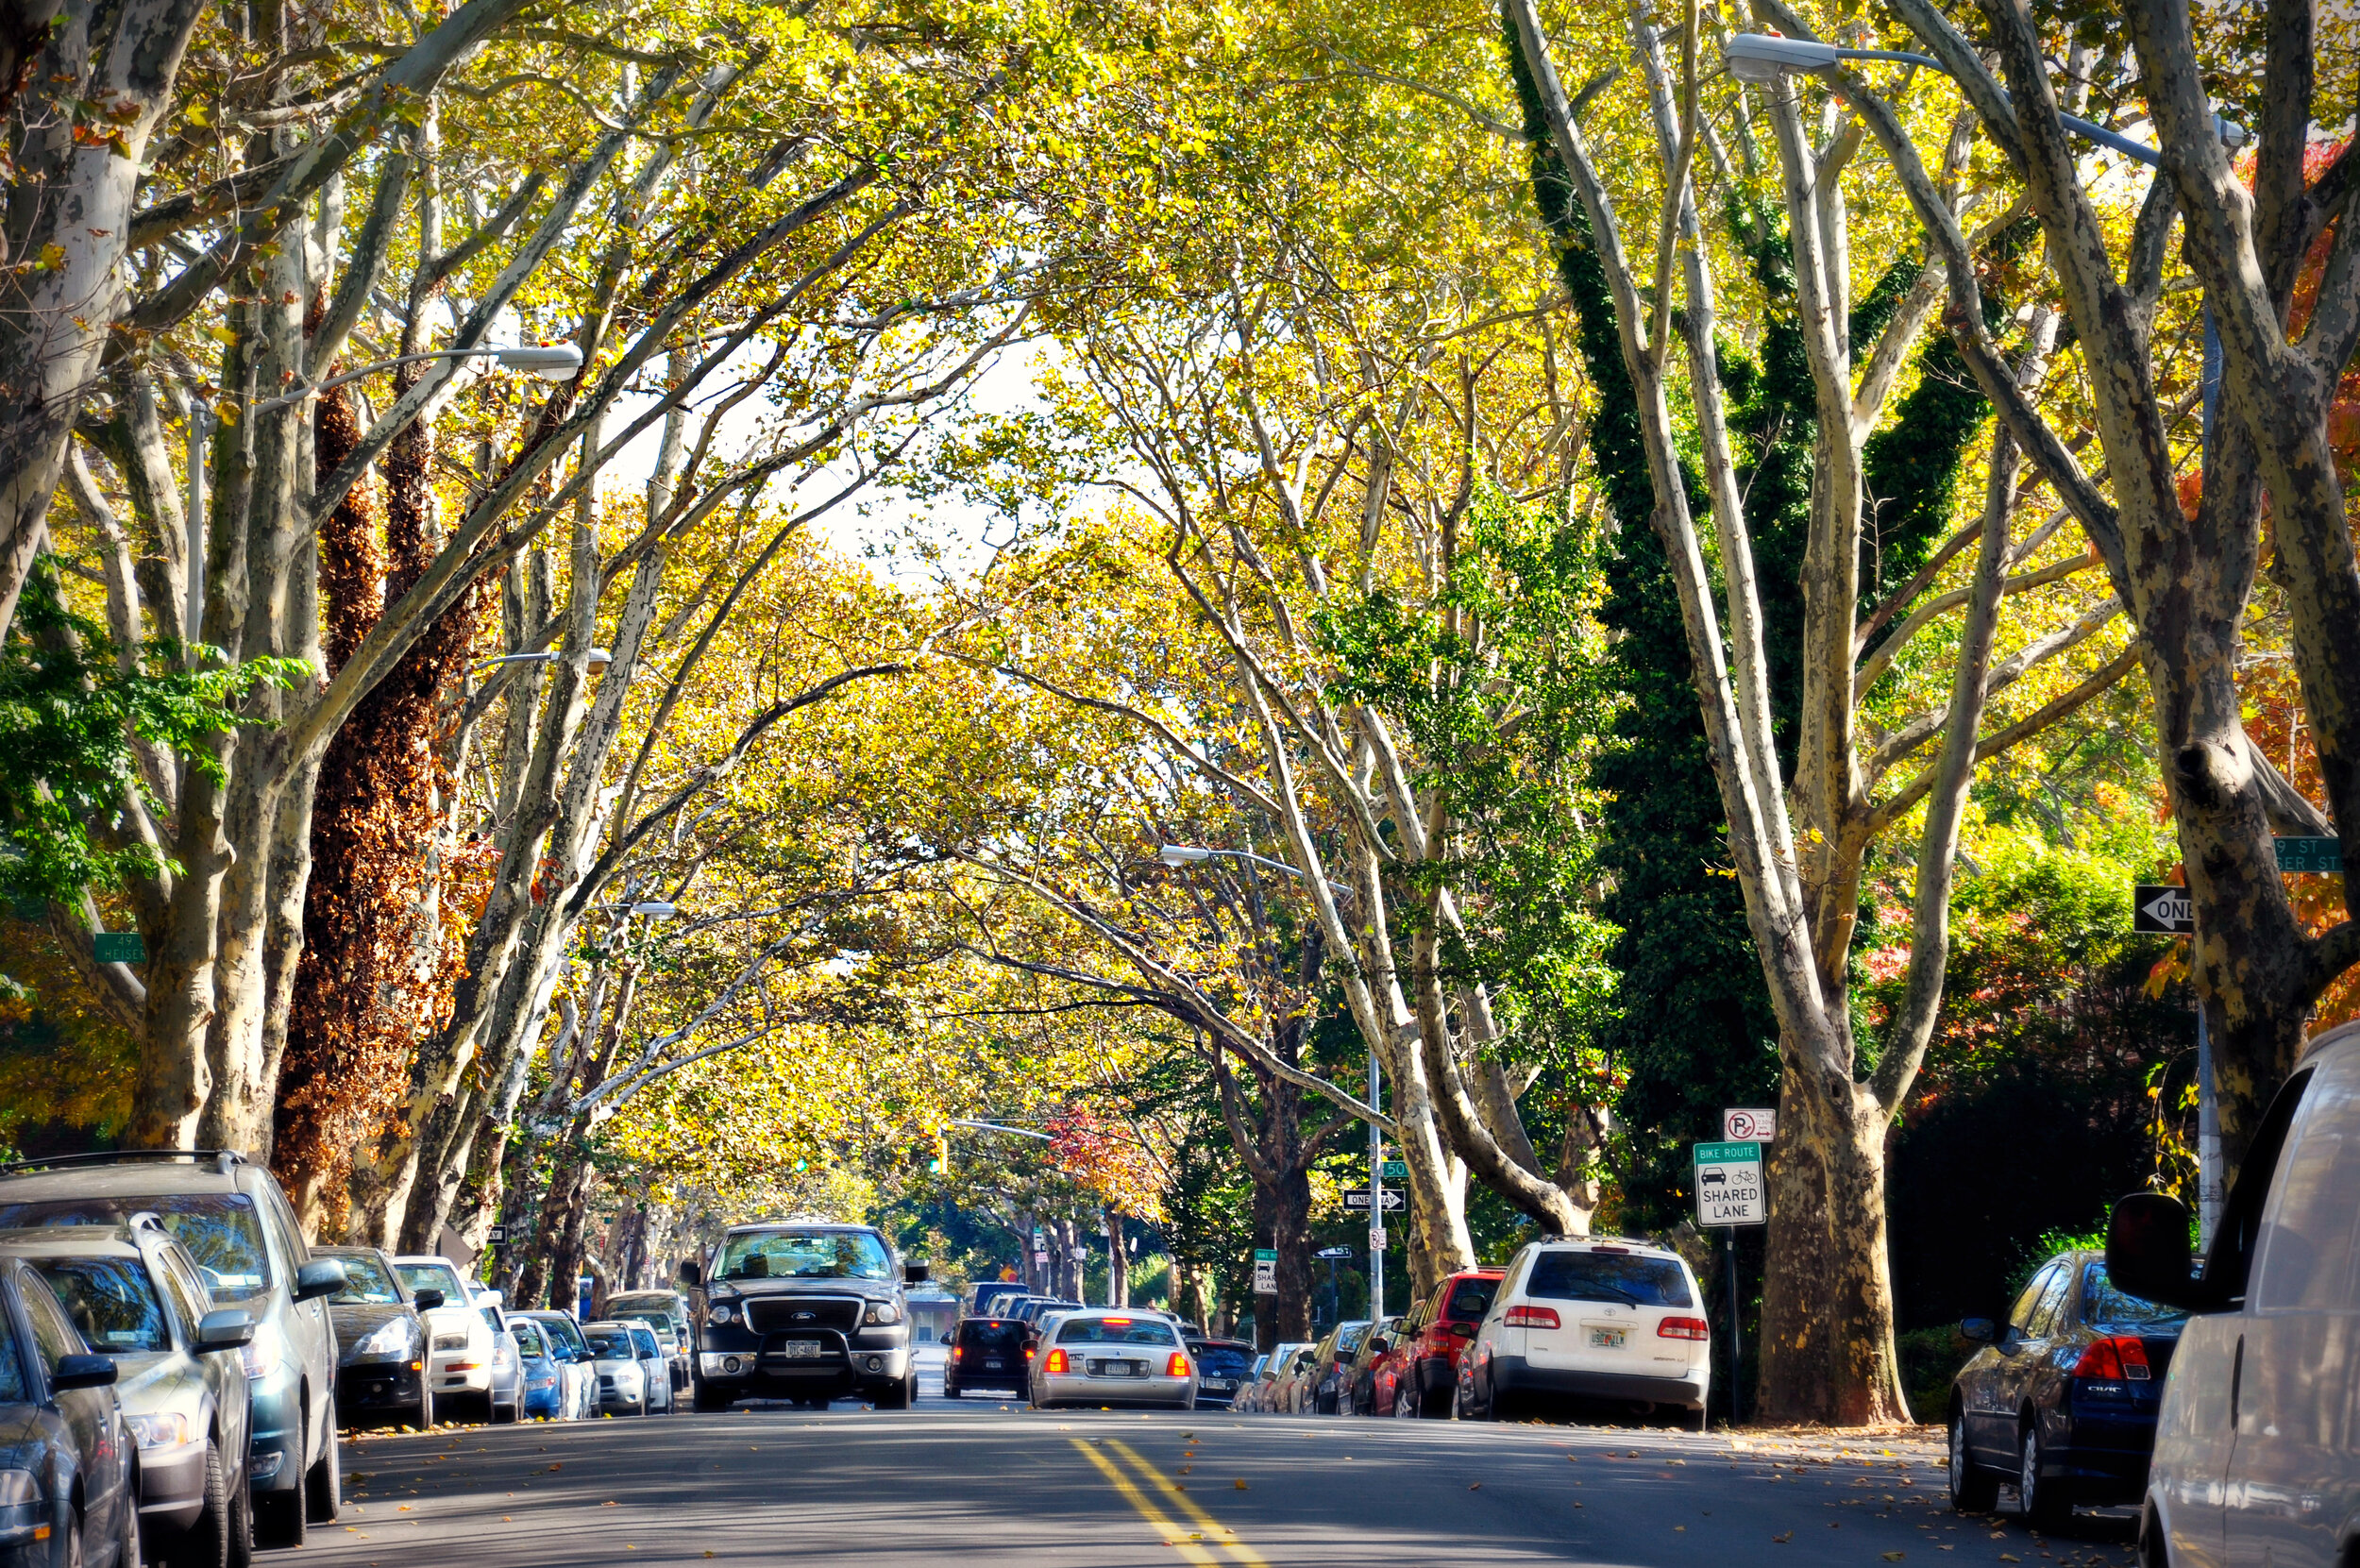 YEP this is basically NYC. You CAN have that tree life and that city life in Queens! Photo Cred: @annpricephoto